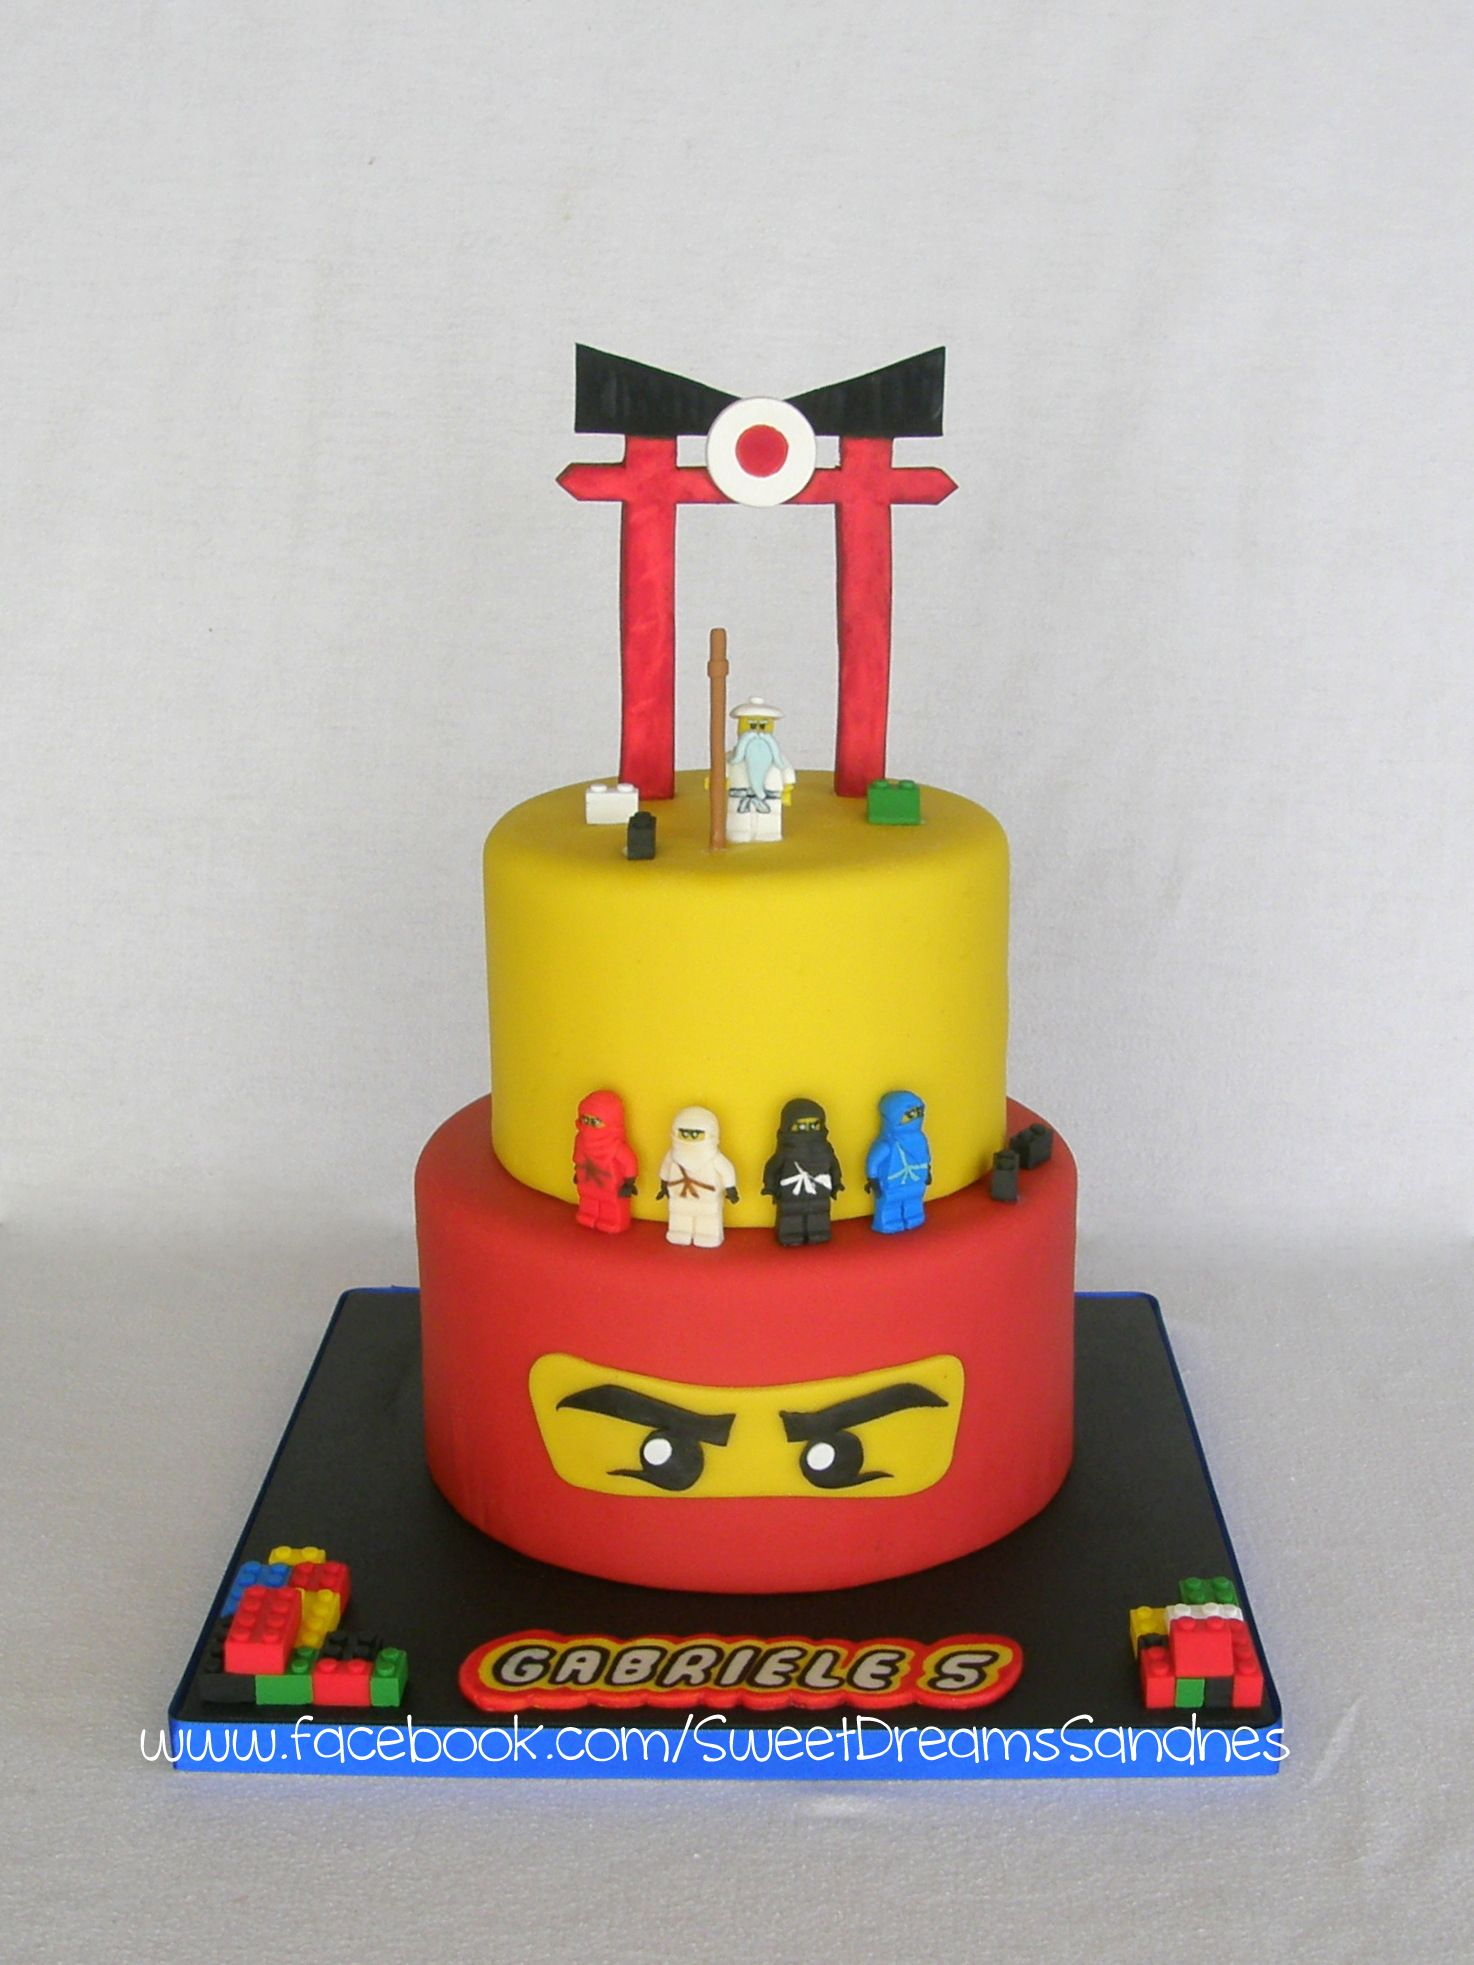 Awesome Lego Ninjago Birthday Cake Put The Bottom Layer As The Top Layer Funny Birthday Cards Online Alyptdamsfinfo